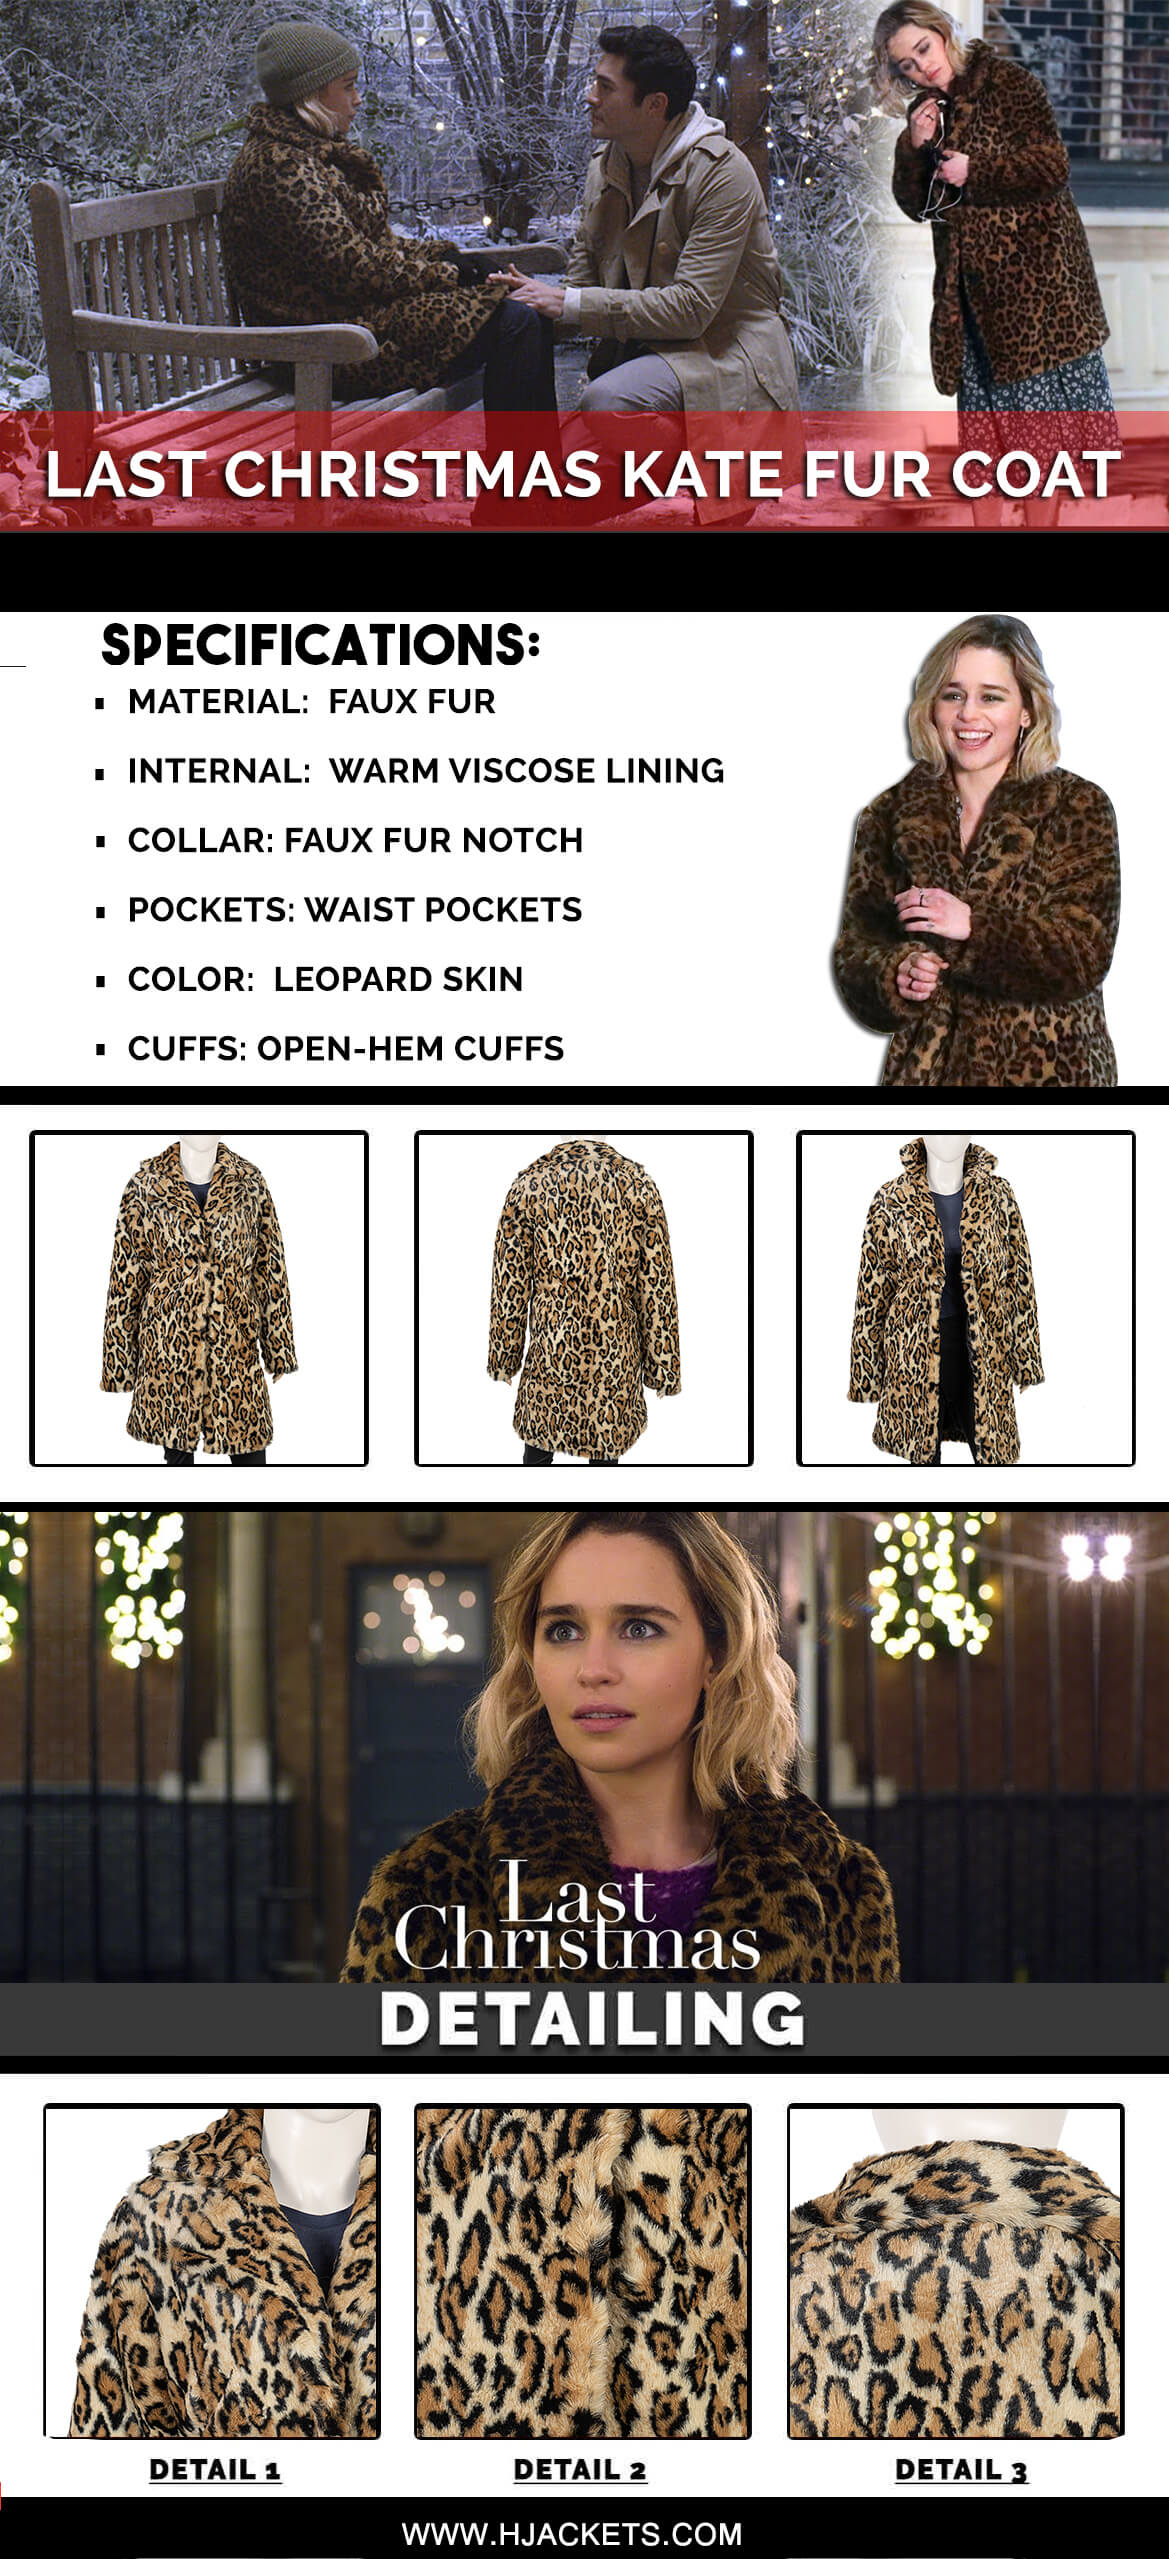 last-christmas-kate-fur-coat-infographic